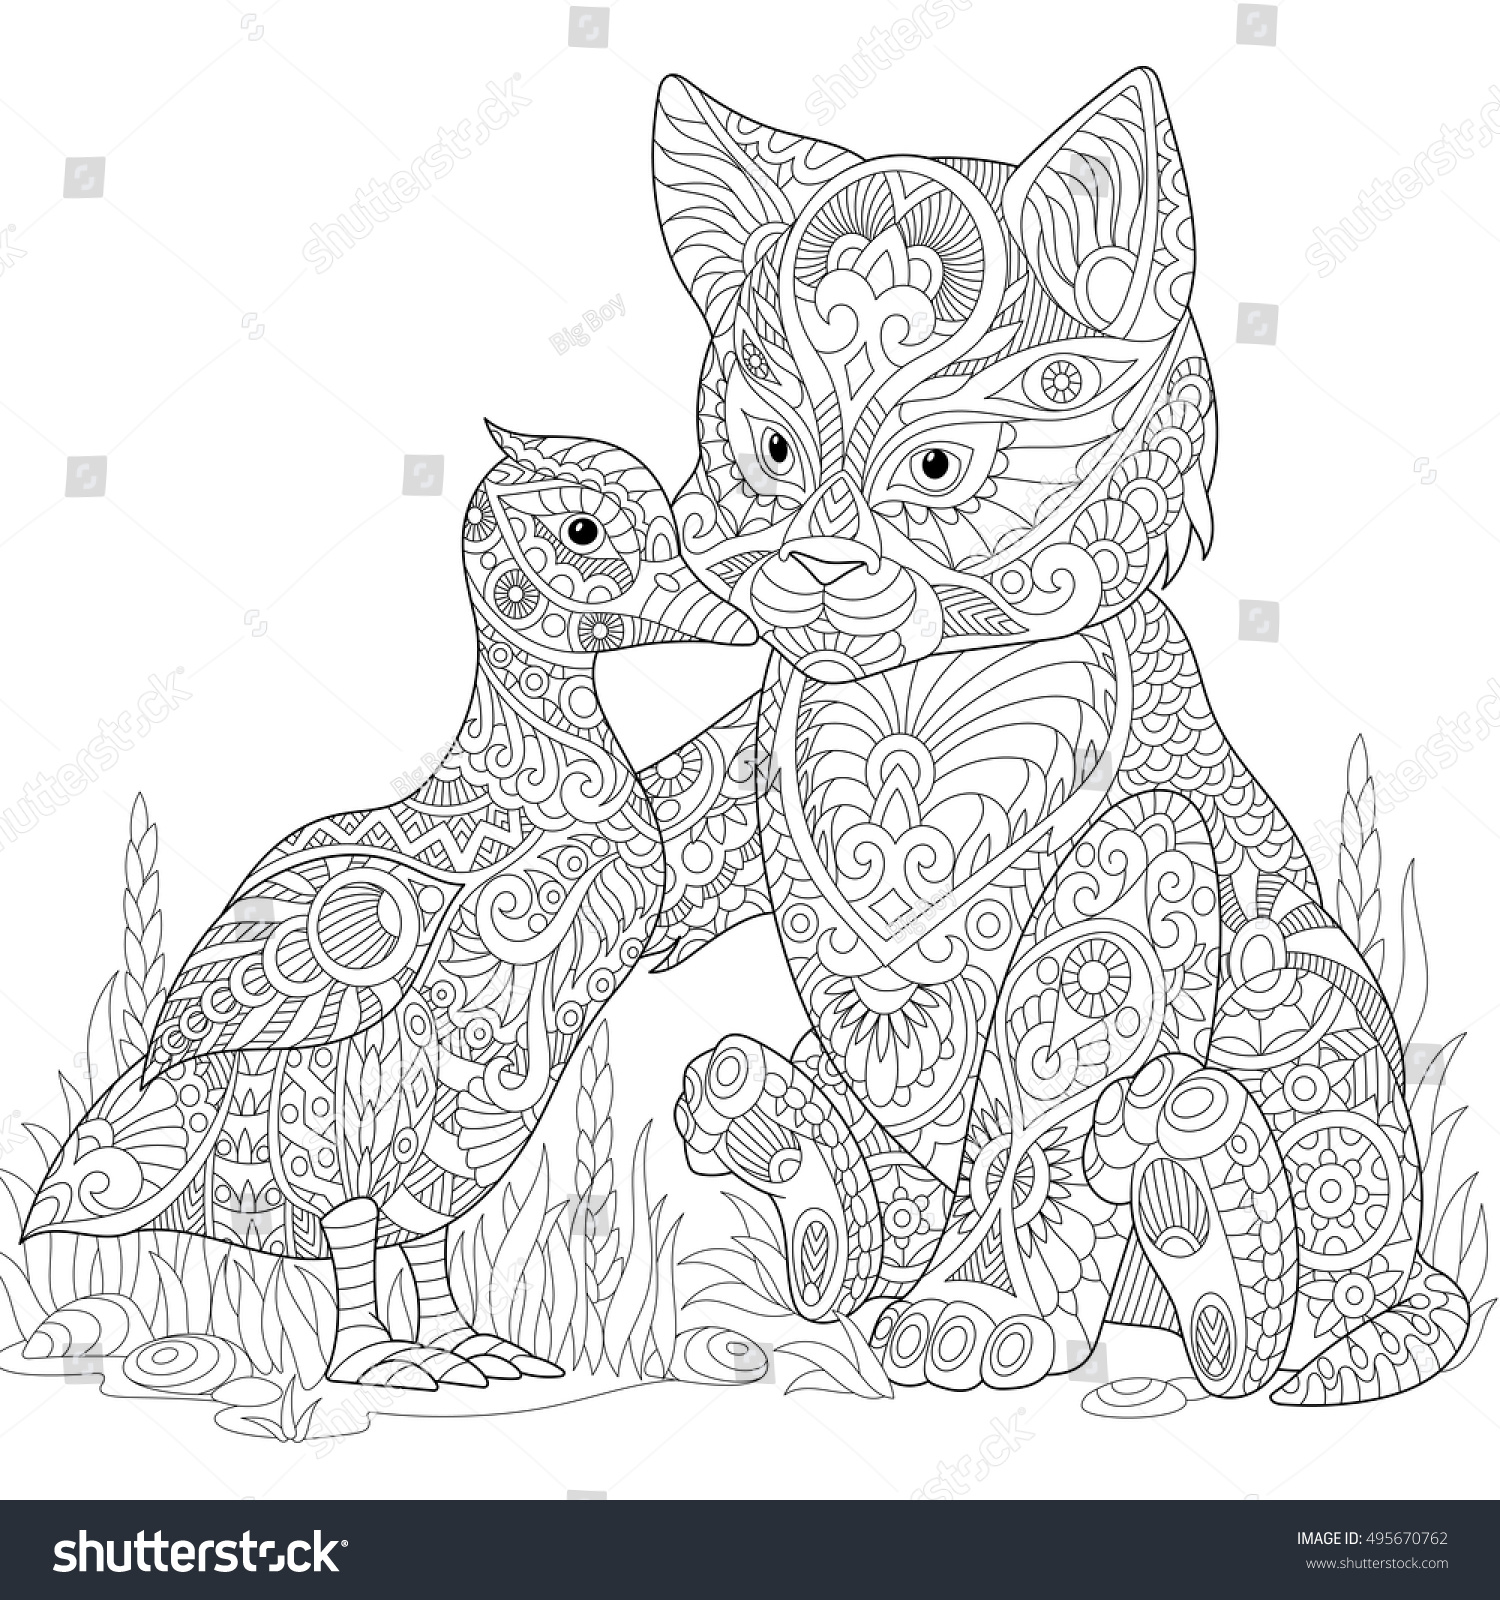 Stylized Cute Friends Cat Young Kitten And Duck Mallard Embracing Each Other